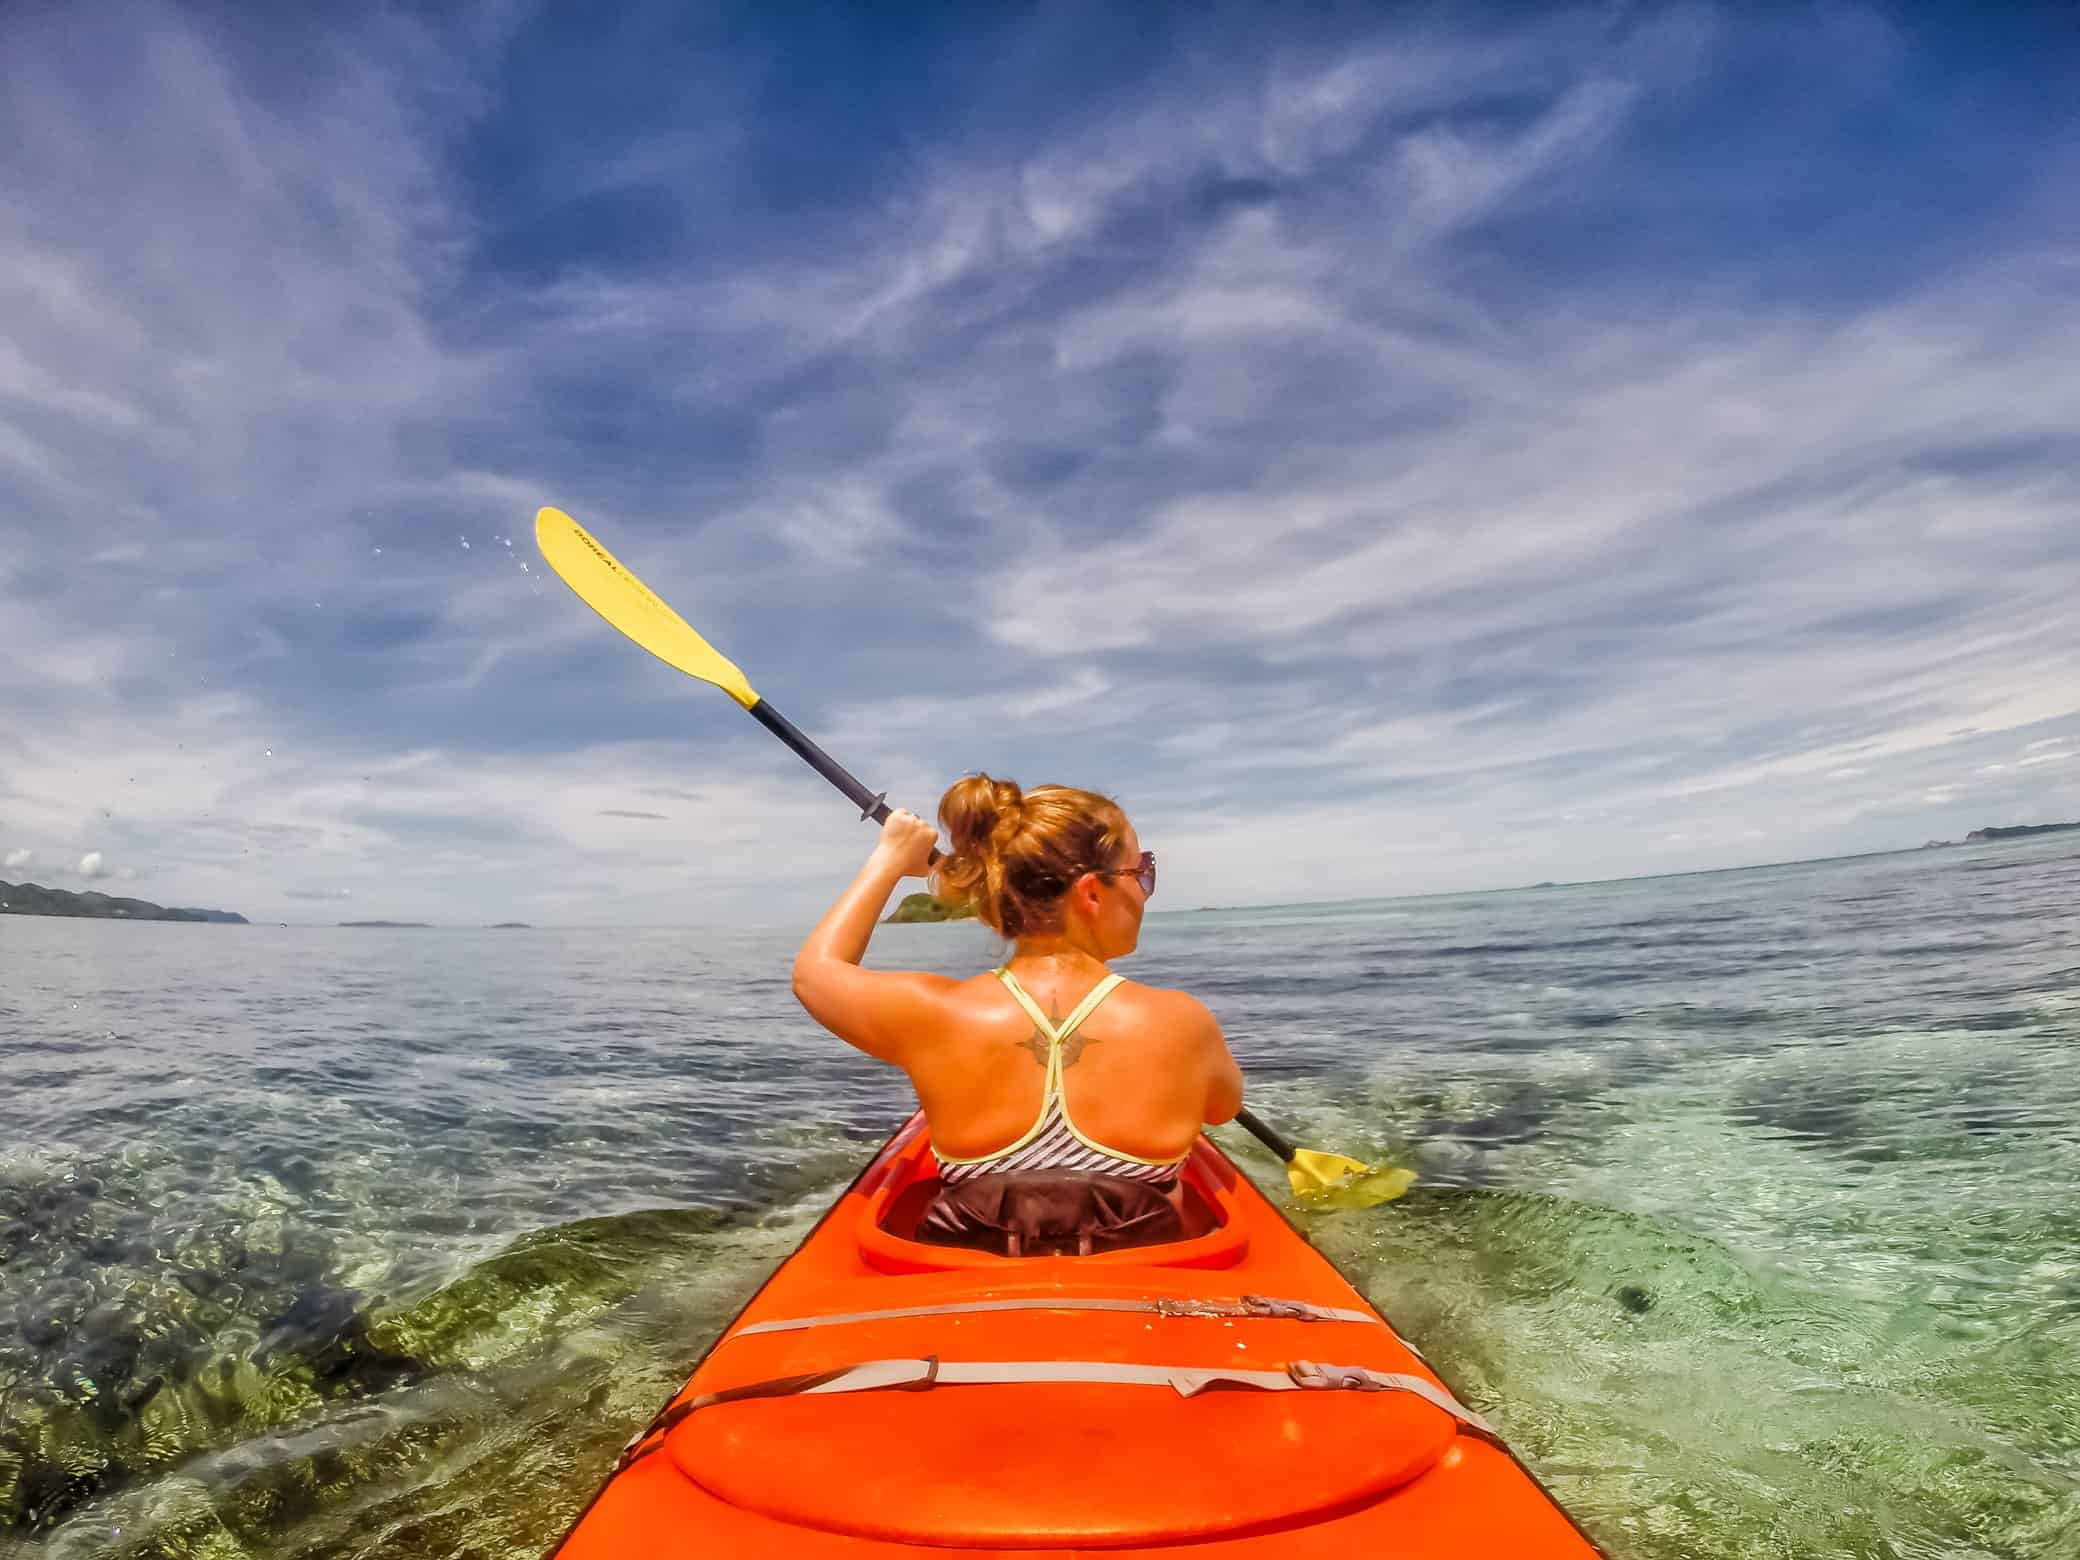 Lina Stock kayaking